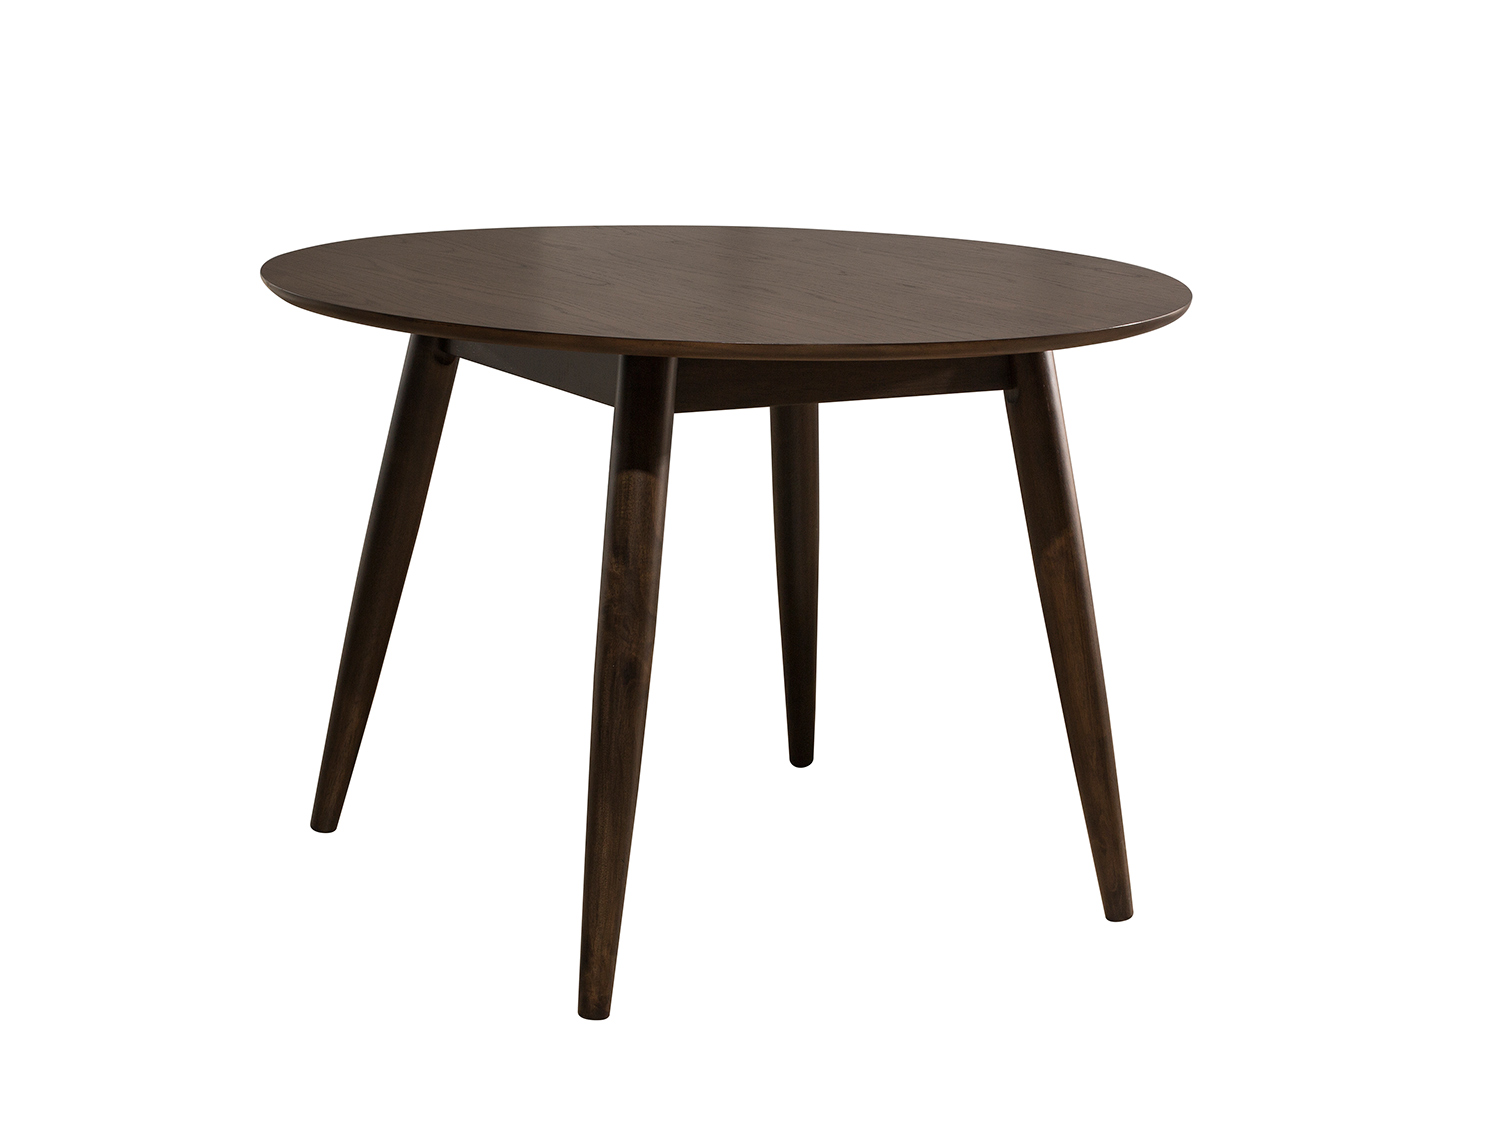 Hillsdale San Marino Midmod Wood Round Dining Table - Chestnut